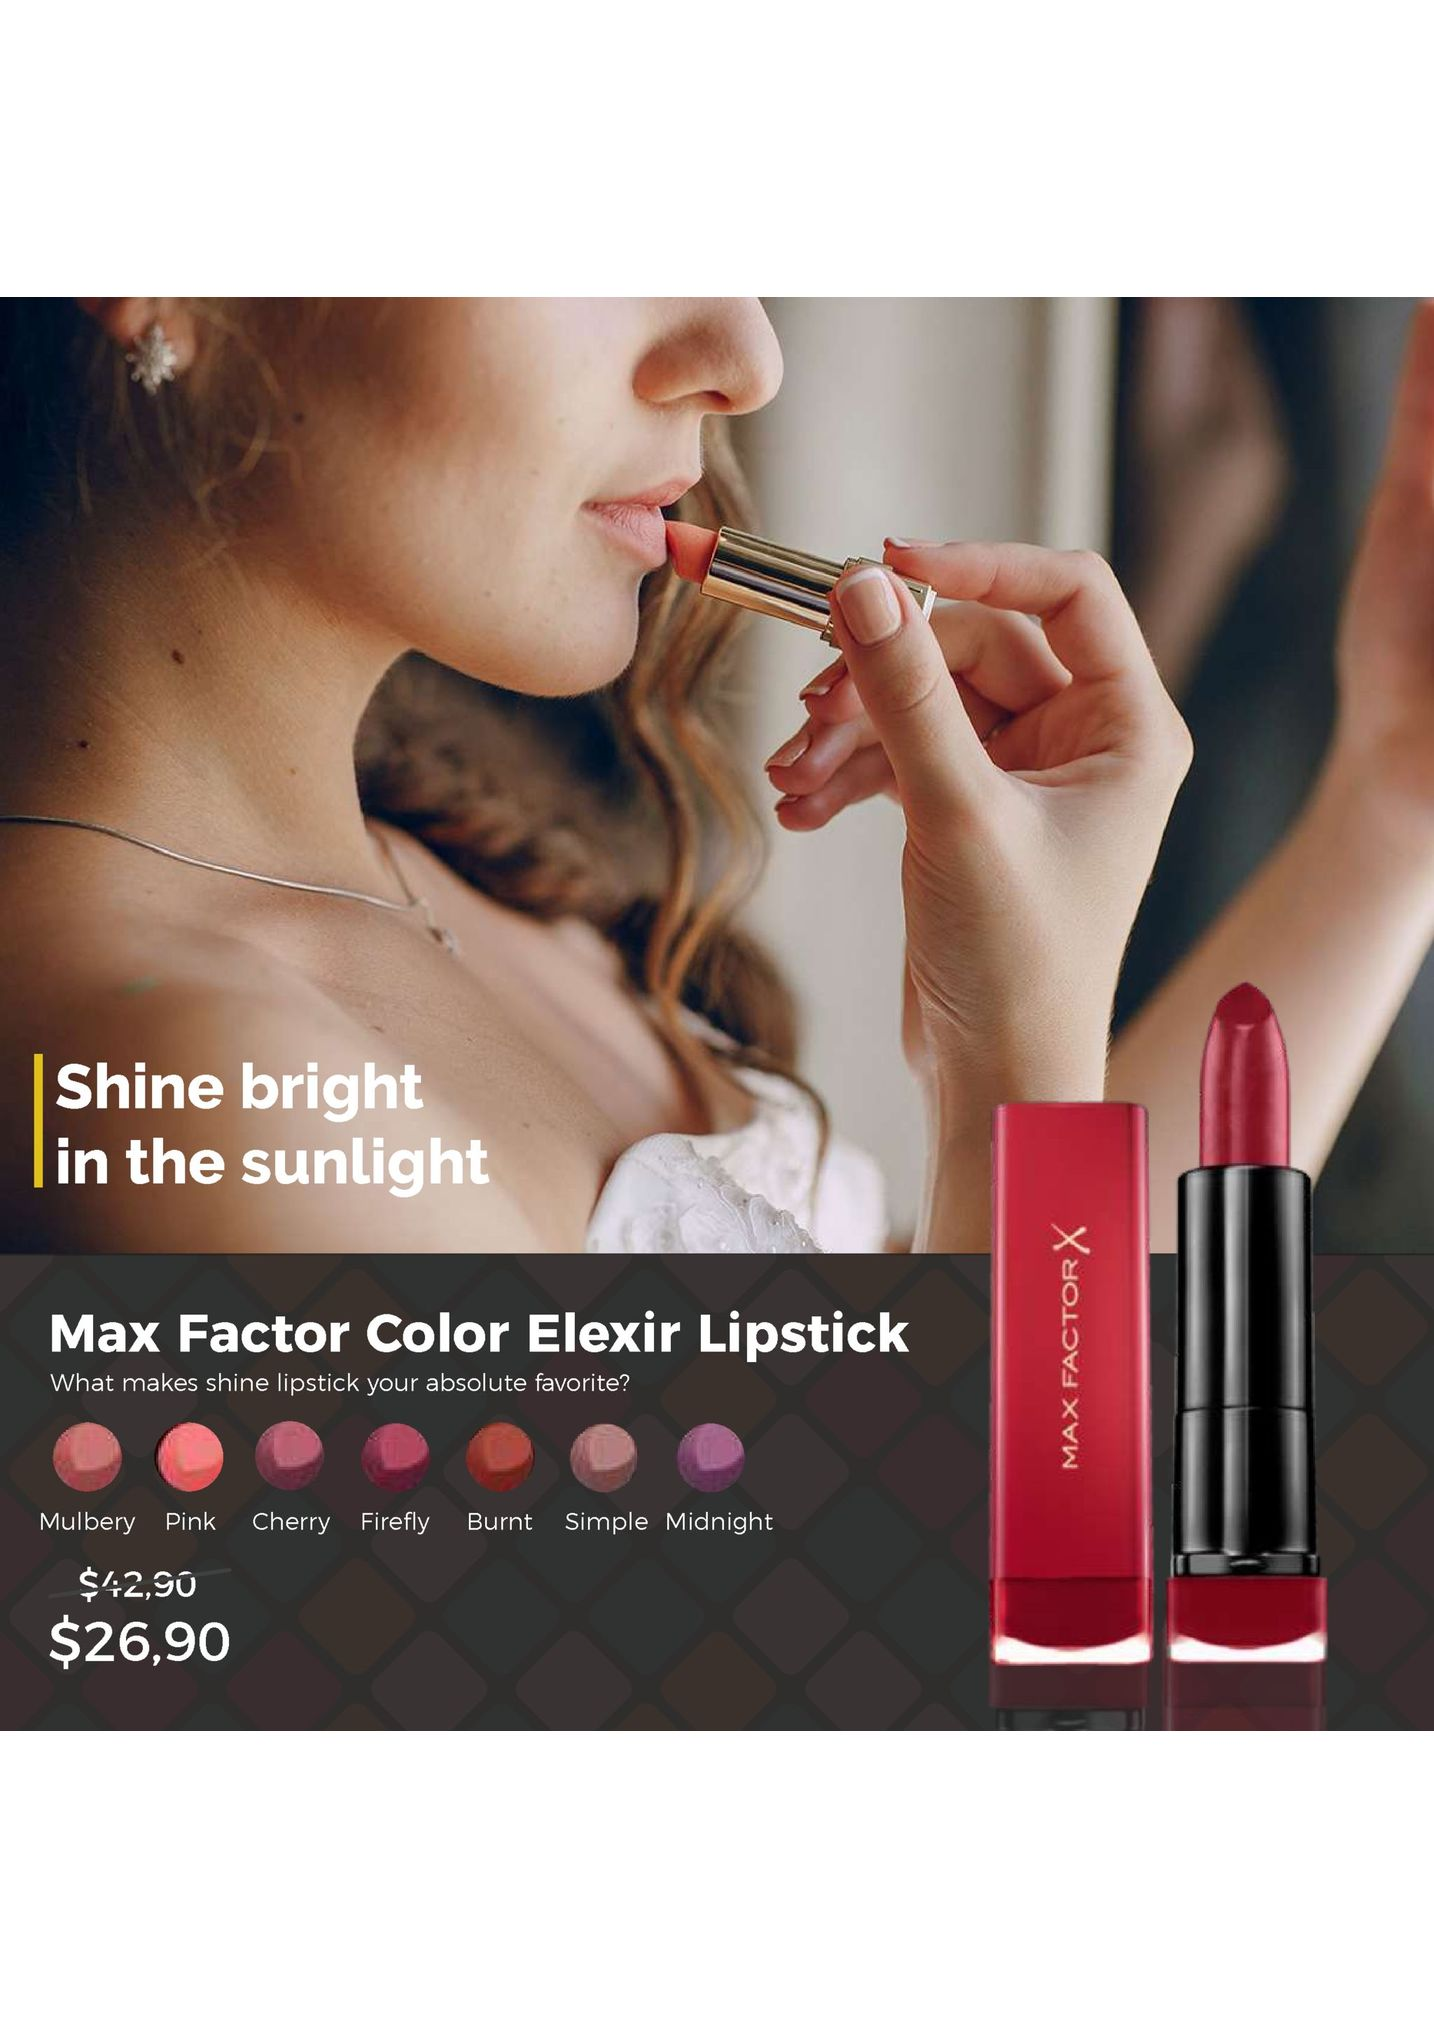 shine bright in the sunlight max factor color elexir lipstick what makes shine lipstick your absolute favorite? mulbery pink cherry firefly burnt simple midnight $42,s0 $26,90